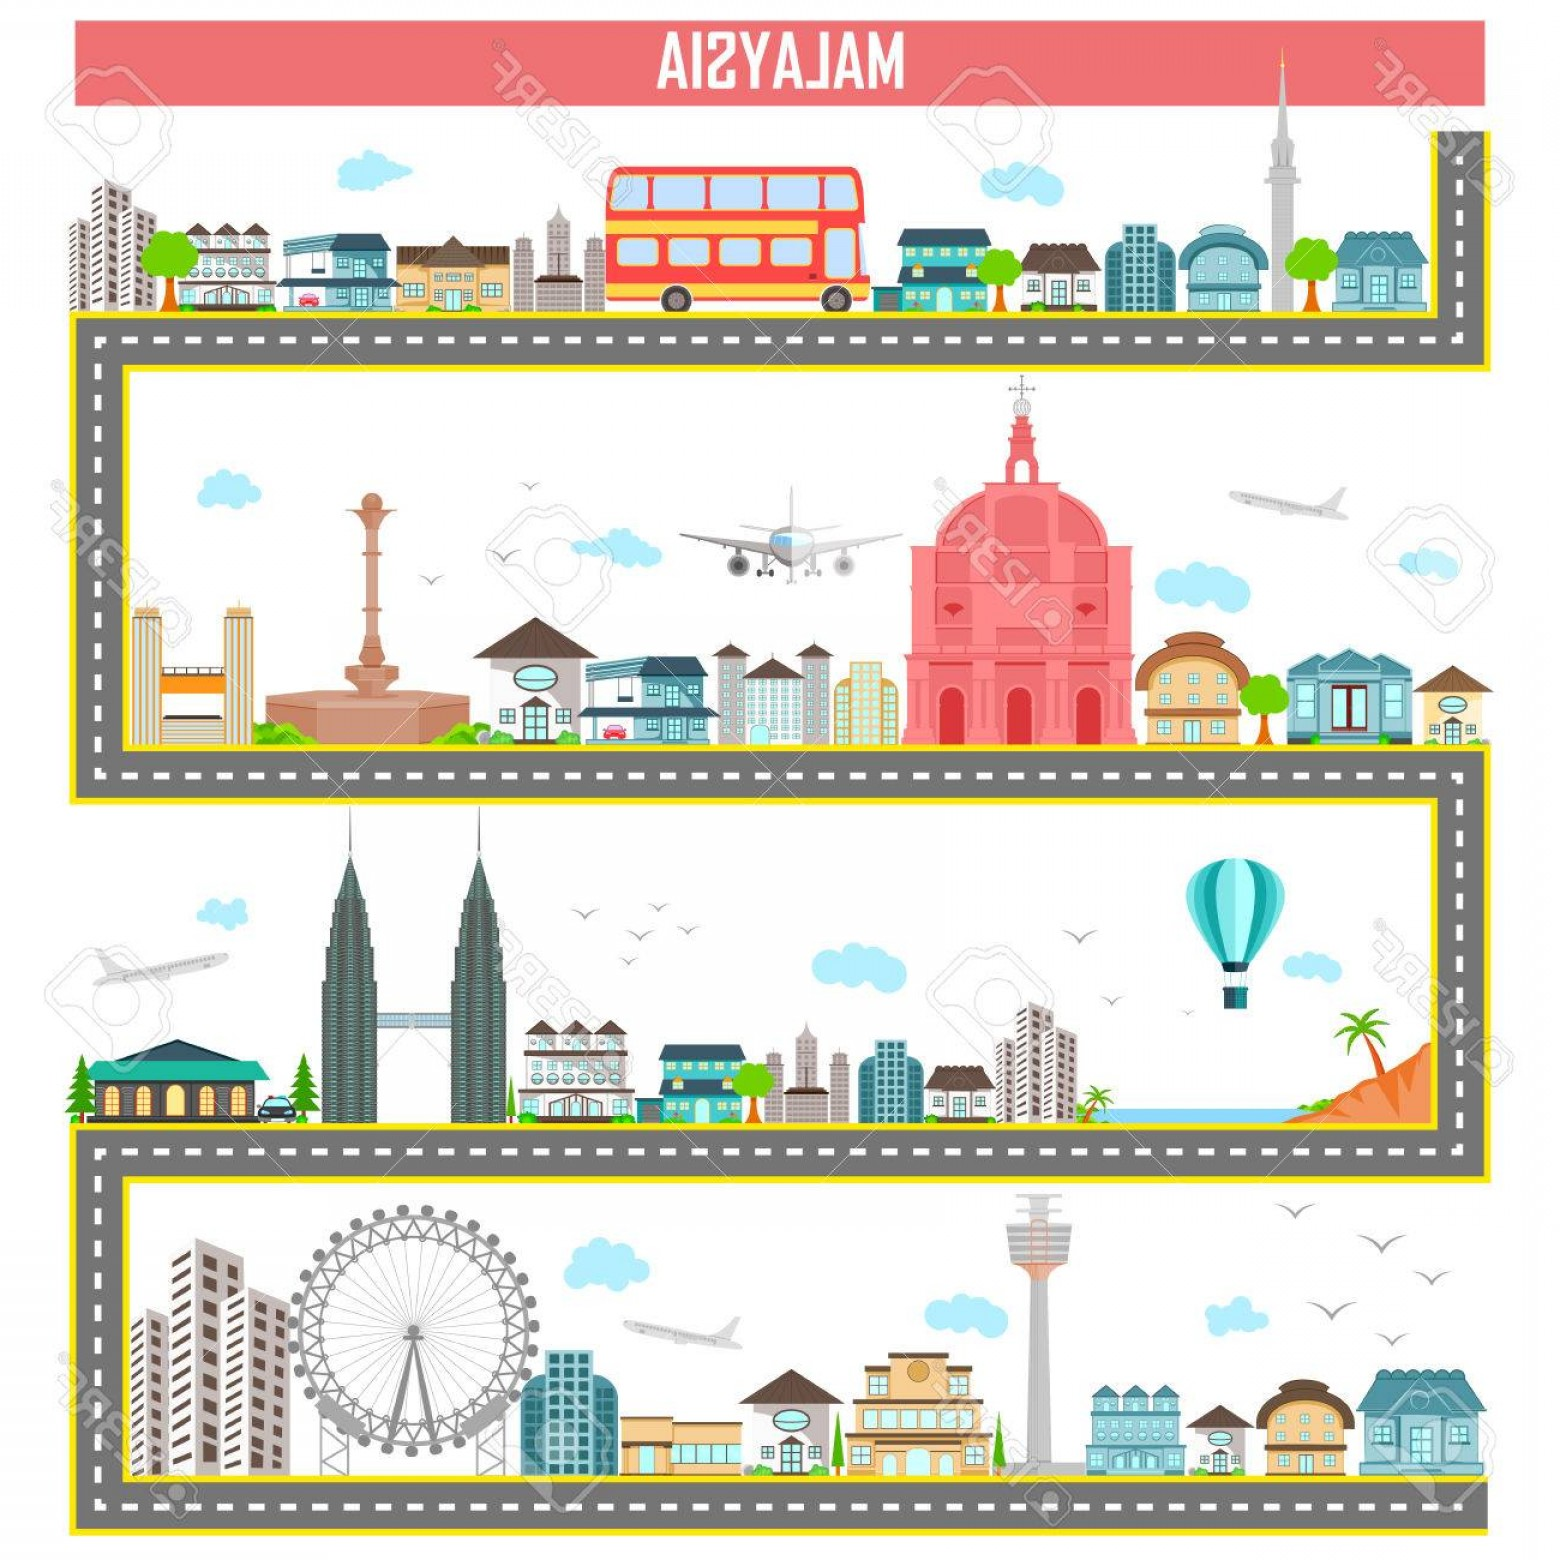 Famous Easy Vectors: Photostock Vector Easy To Edit Vector Illustration Of Cityscape With Famous Monument And Building Of Malaysia